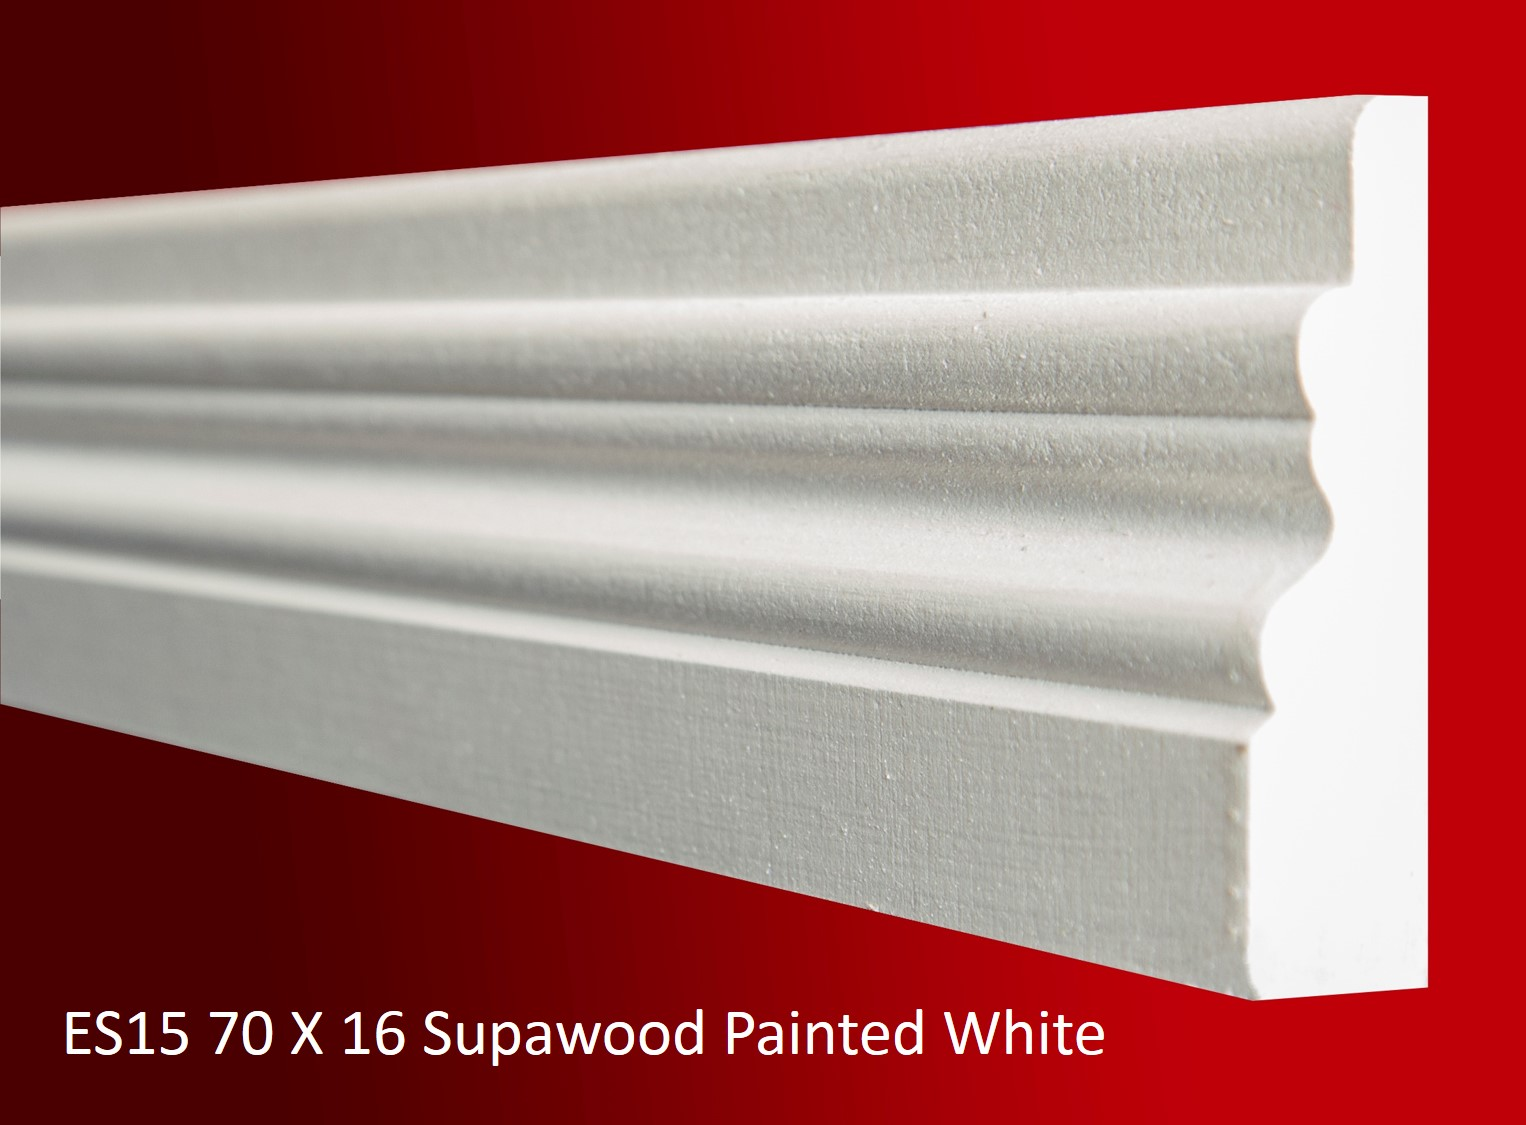 ES15 70 X 16 Supawood Painted White